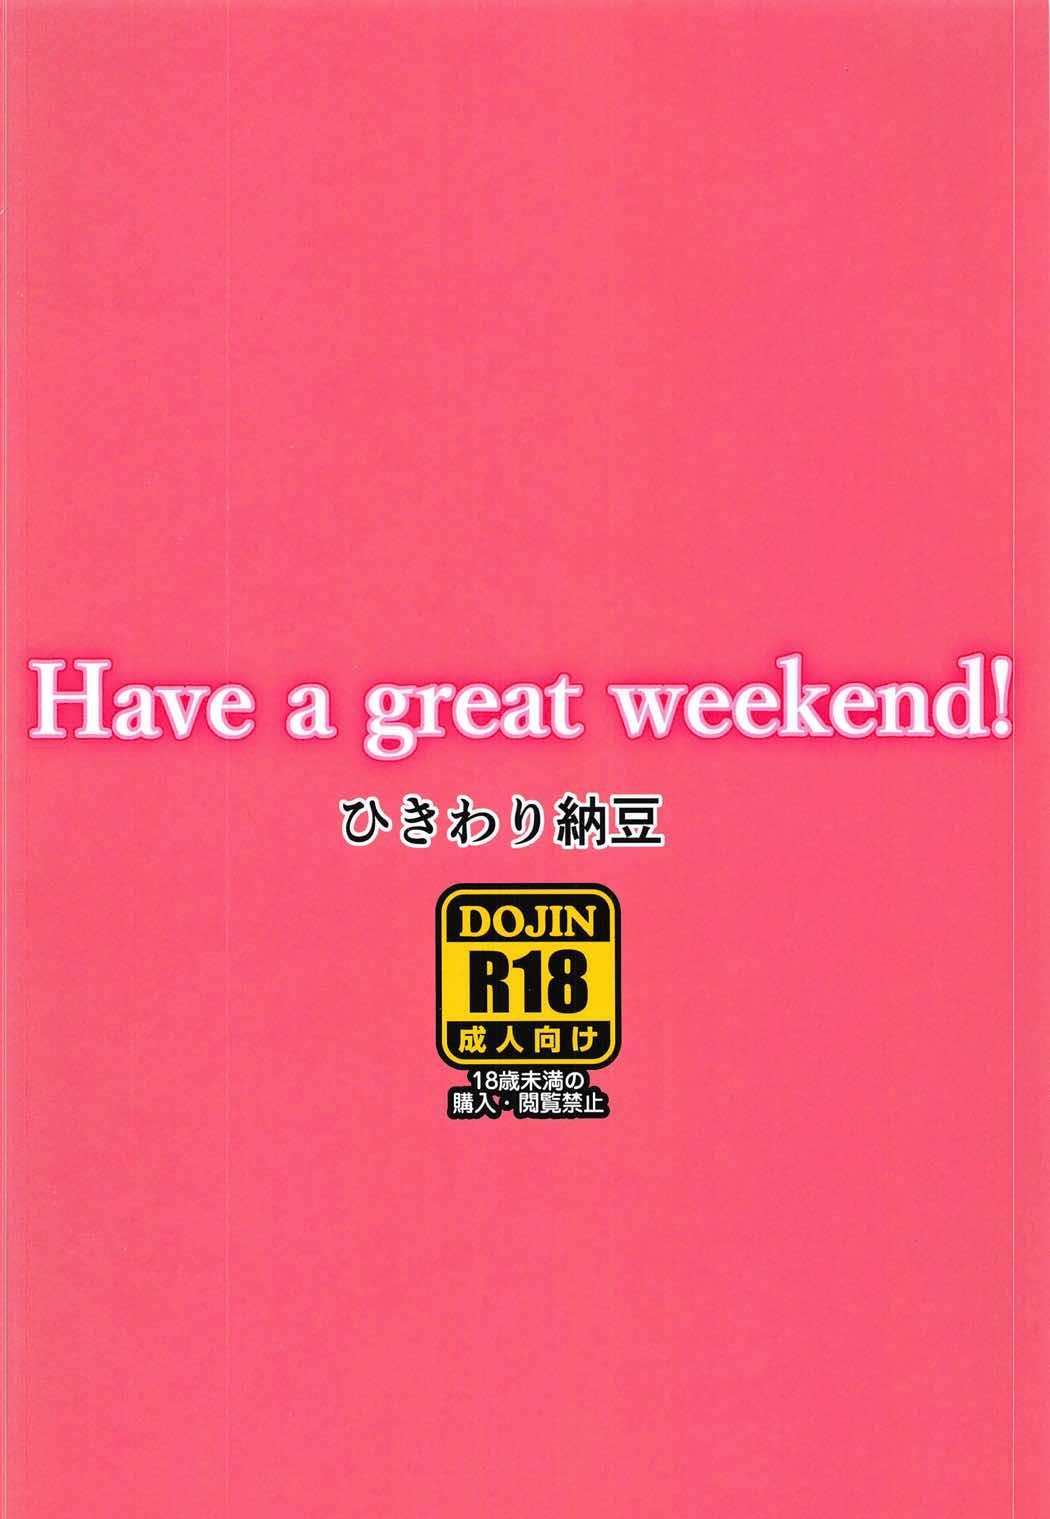 Have a great weekend! 15